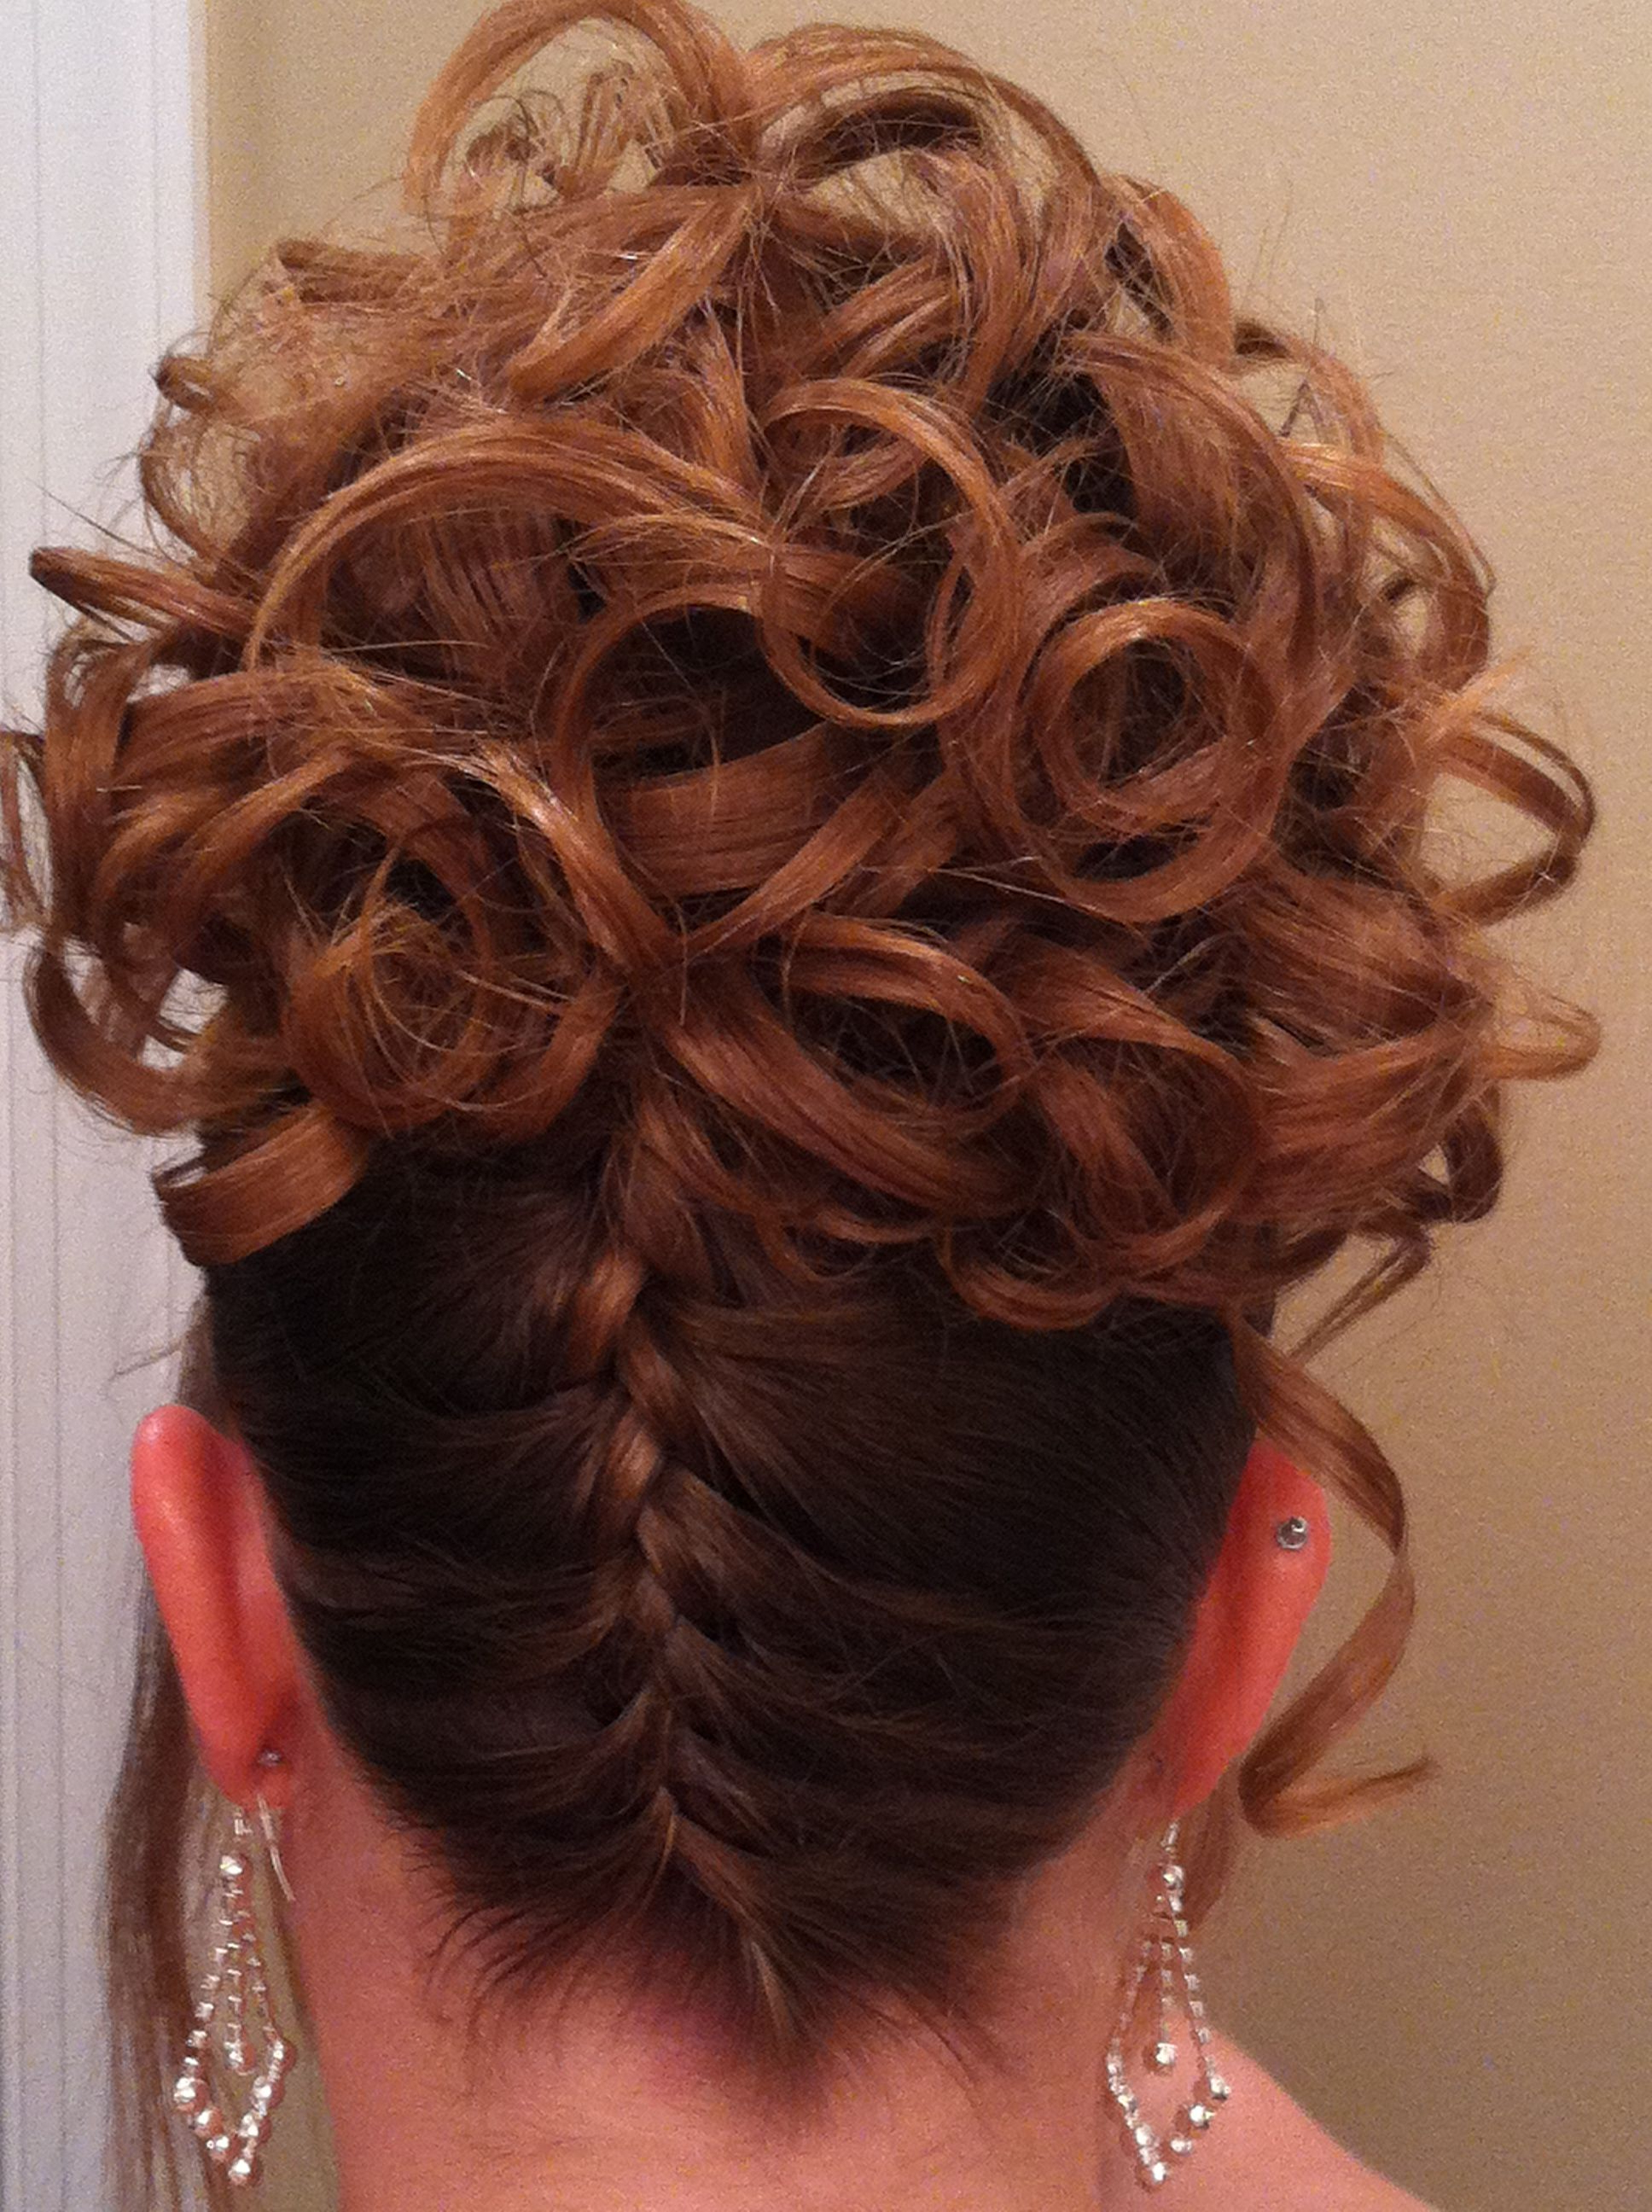 Hair, Hair Regarding Well Known Upside Down Braid And Bun Prom Hairstyles (View 8 of 20)